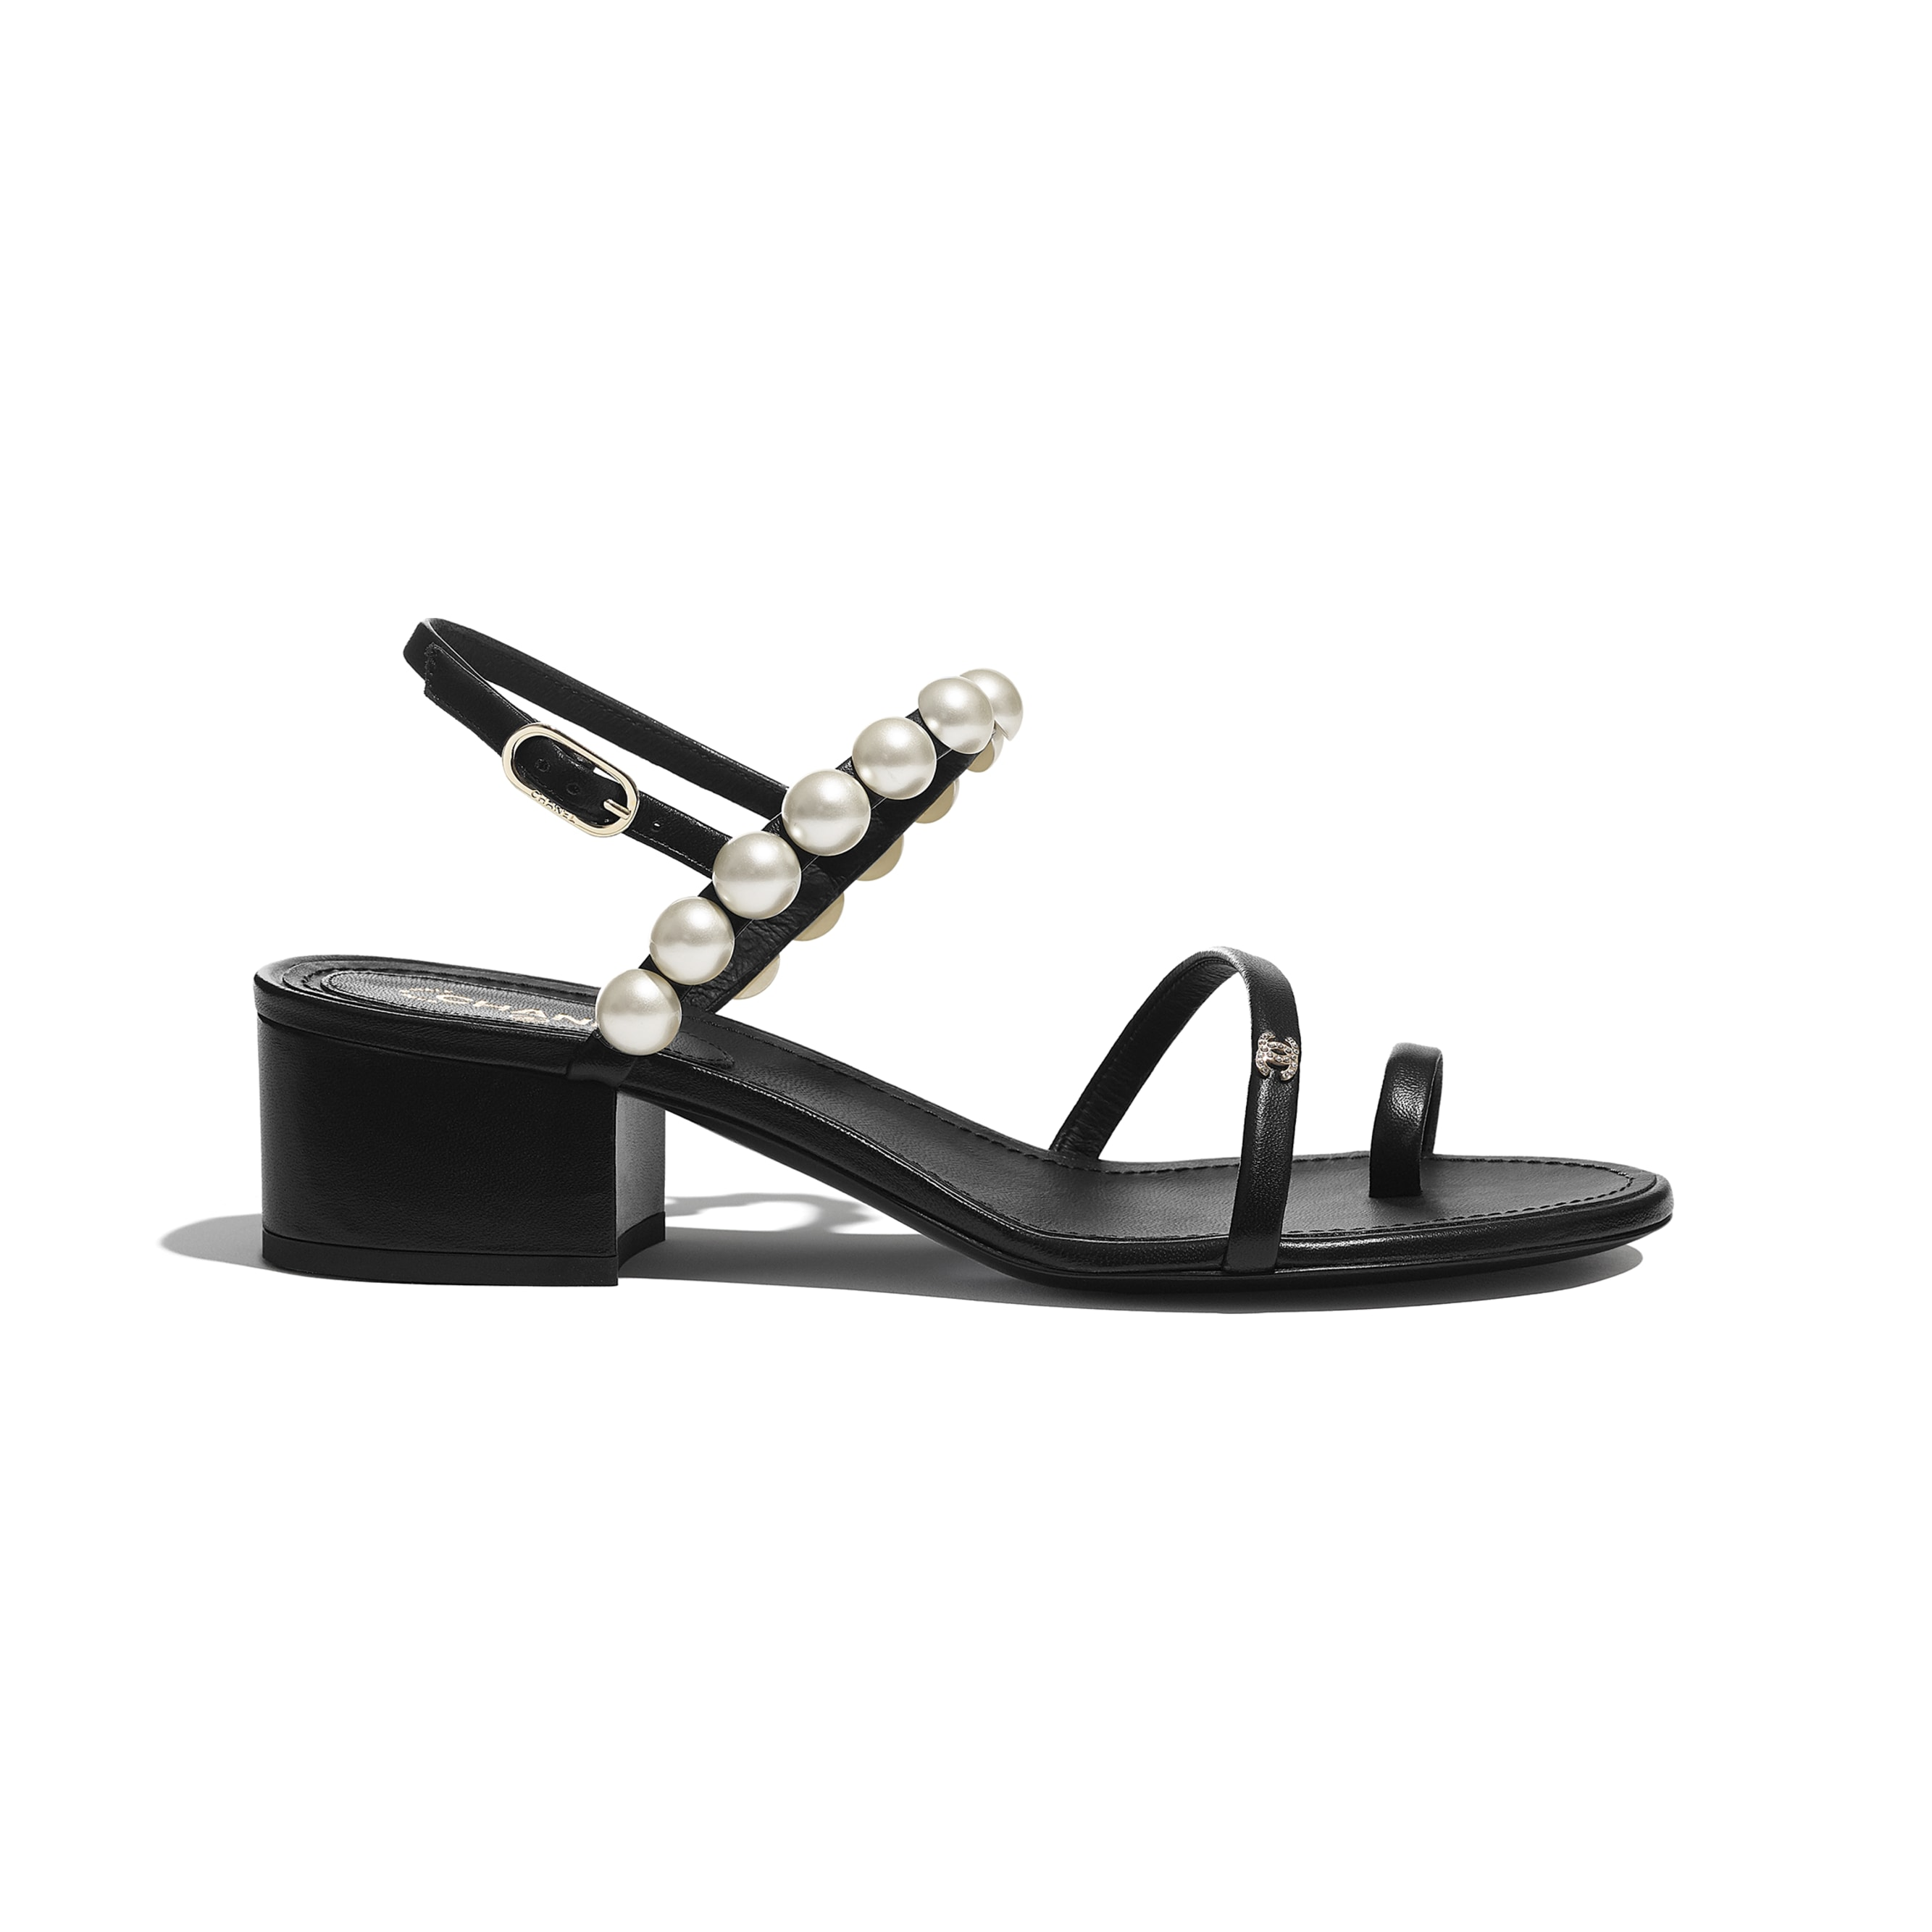 Sandals - Black - Lambskin & Pearls - CHANEL - Default view - see standard sized version